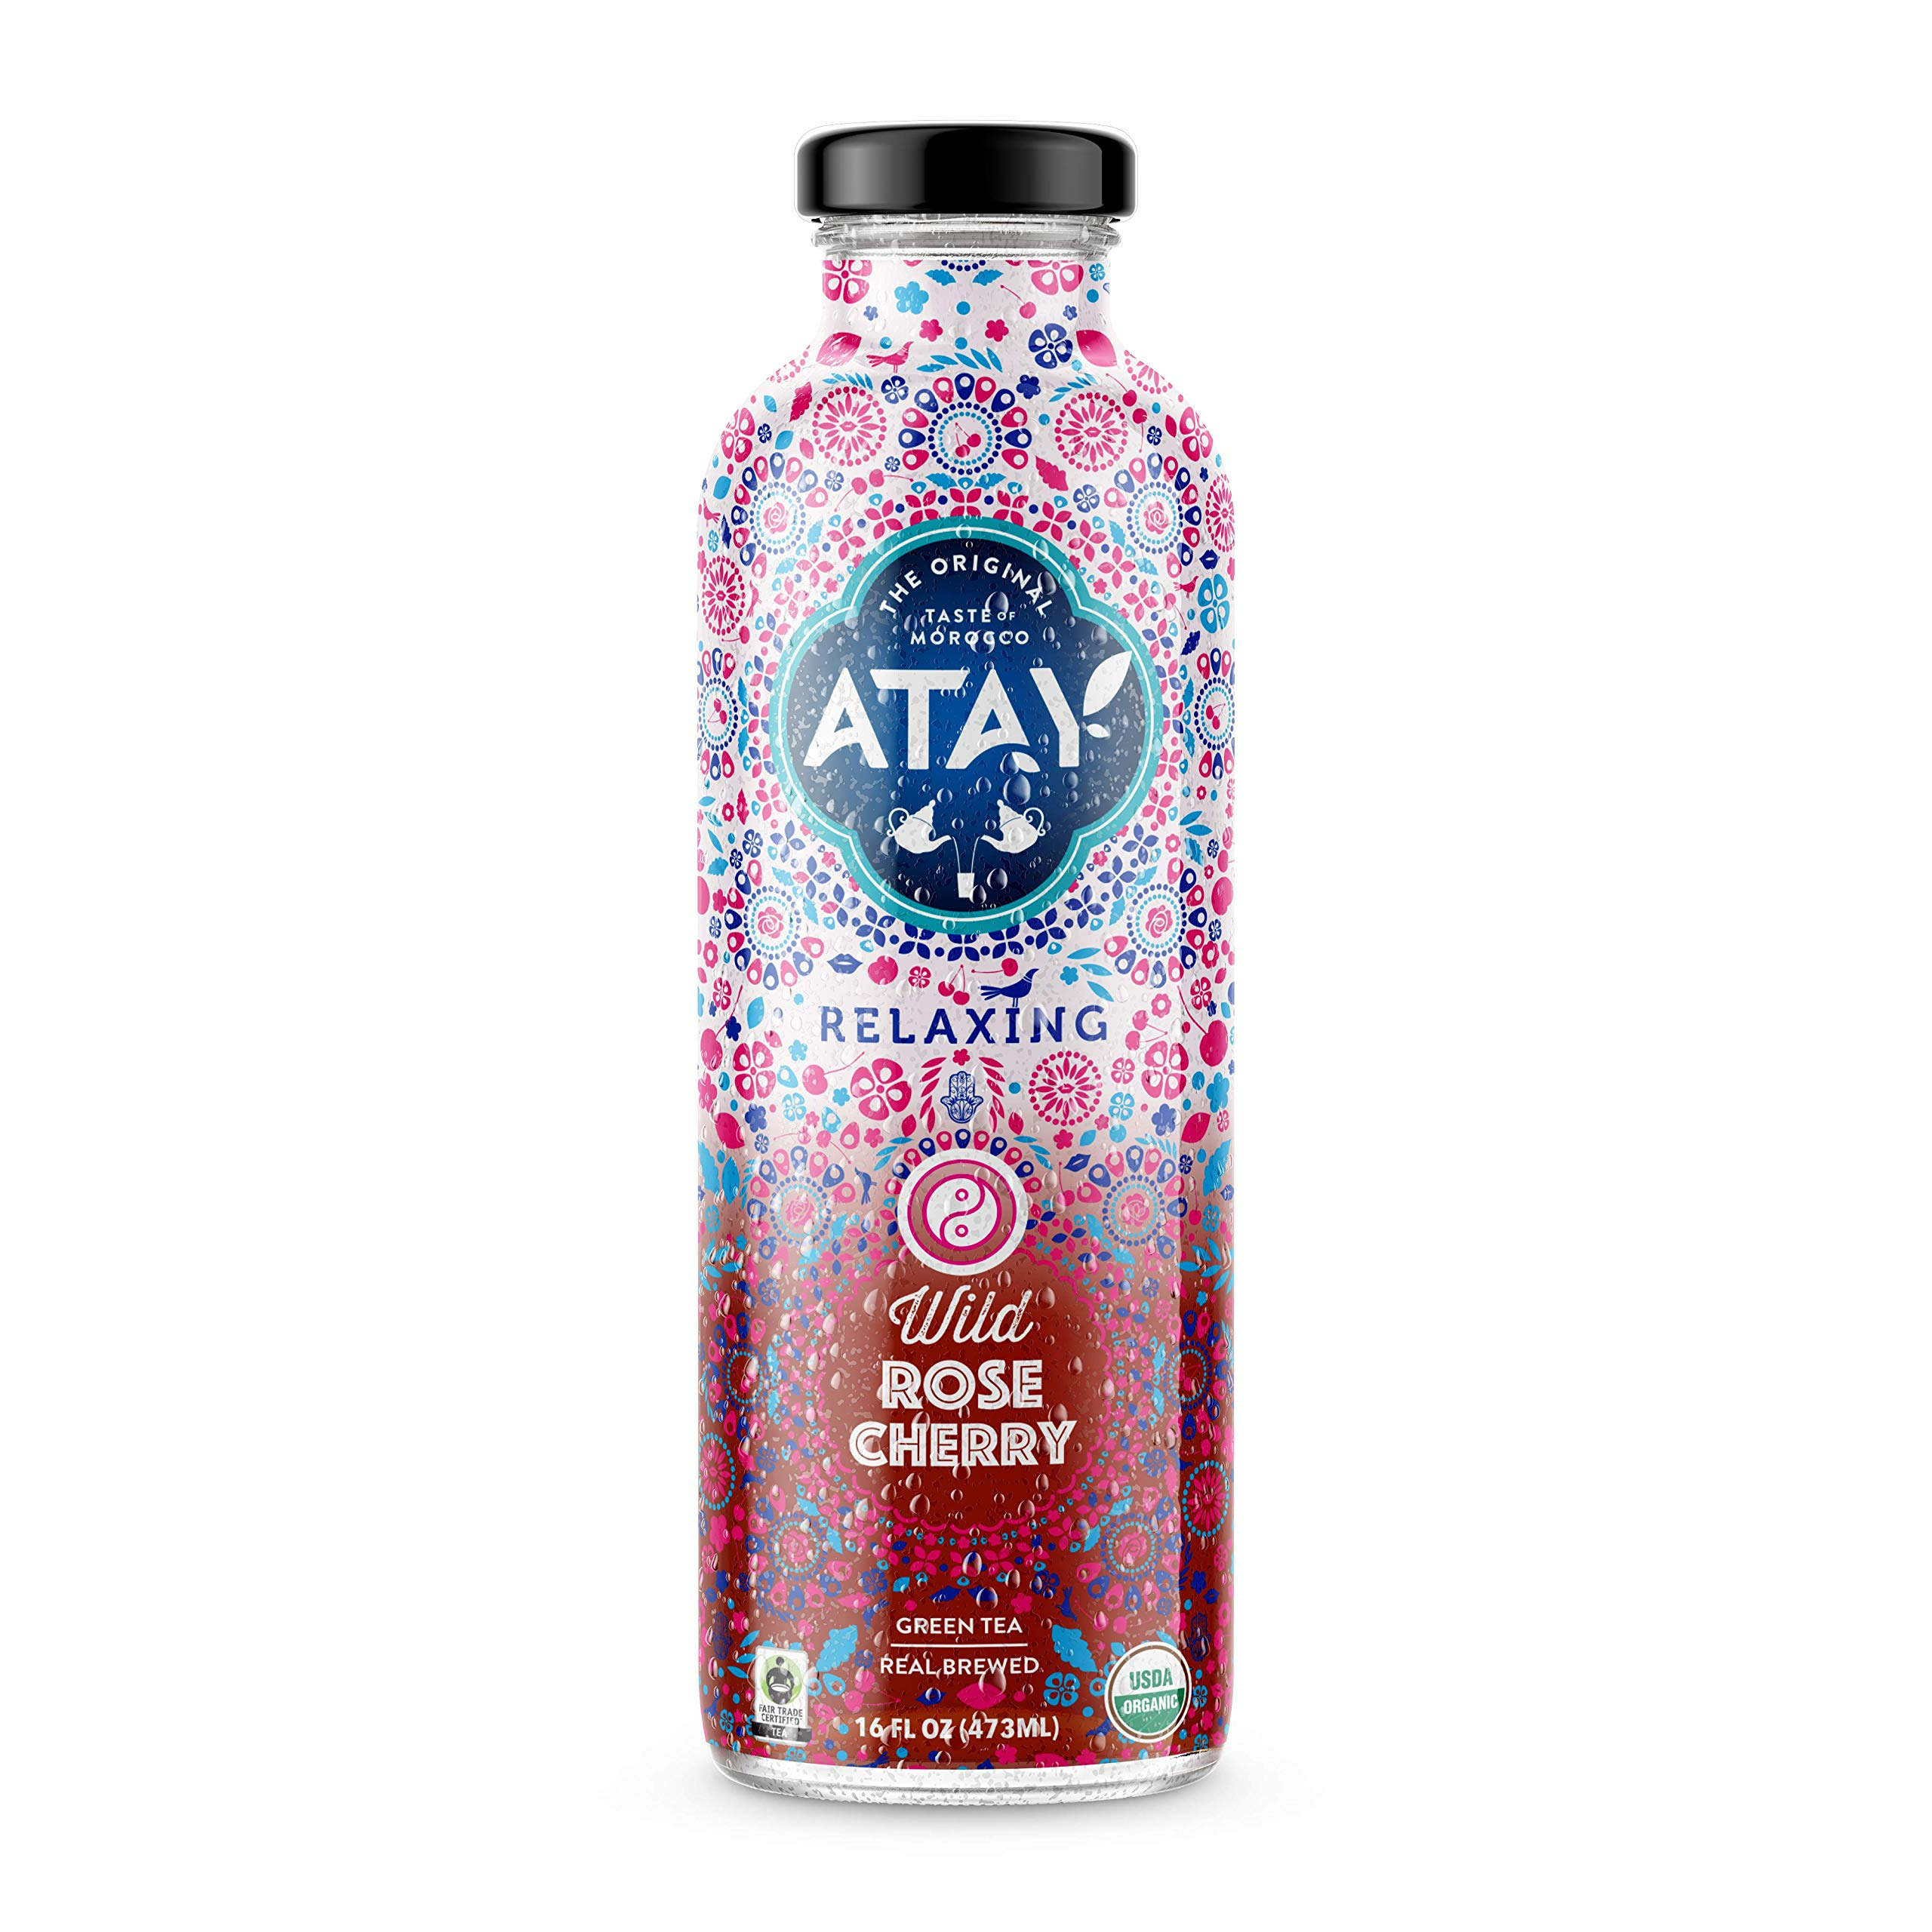 ATAY Moroccan Organic Rose Cherry Iced Tea - Made With Organic Pure Green Tea And All-Natural Organic Stevia Leaf Extract For A Delicious and Subtle Sweet Flavor - 16 Oz, 8 Pack